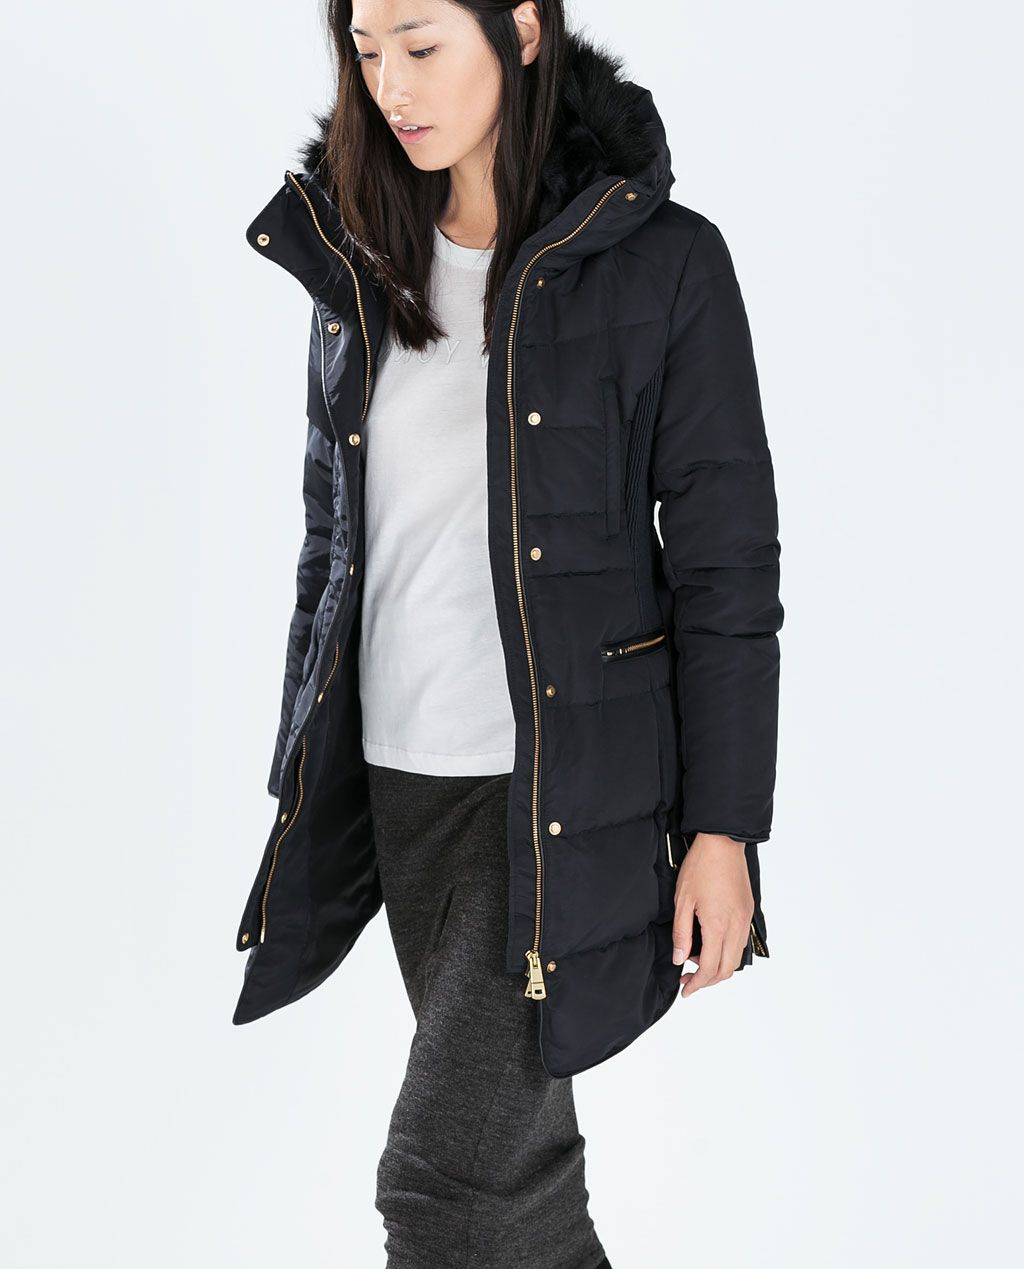 5689c929a0c27 LONG DOWN ANORAK WITH FUR COLLAR from Zara | hot bod | Fur collars ...